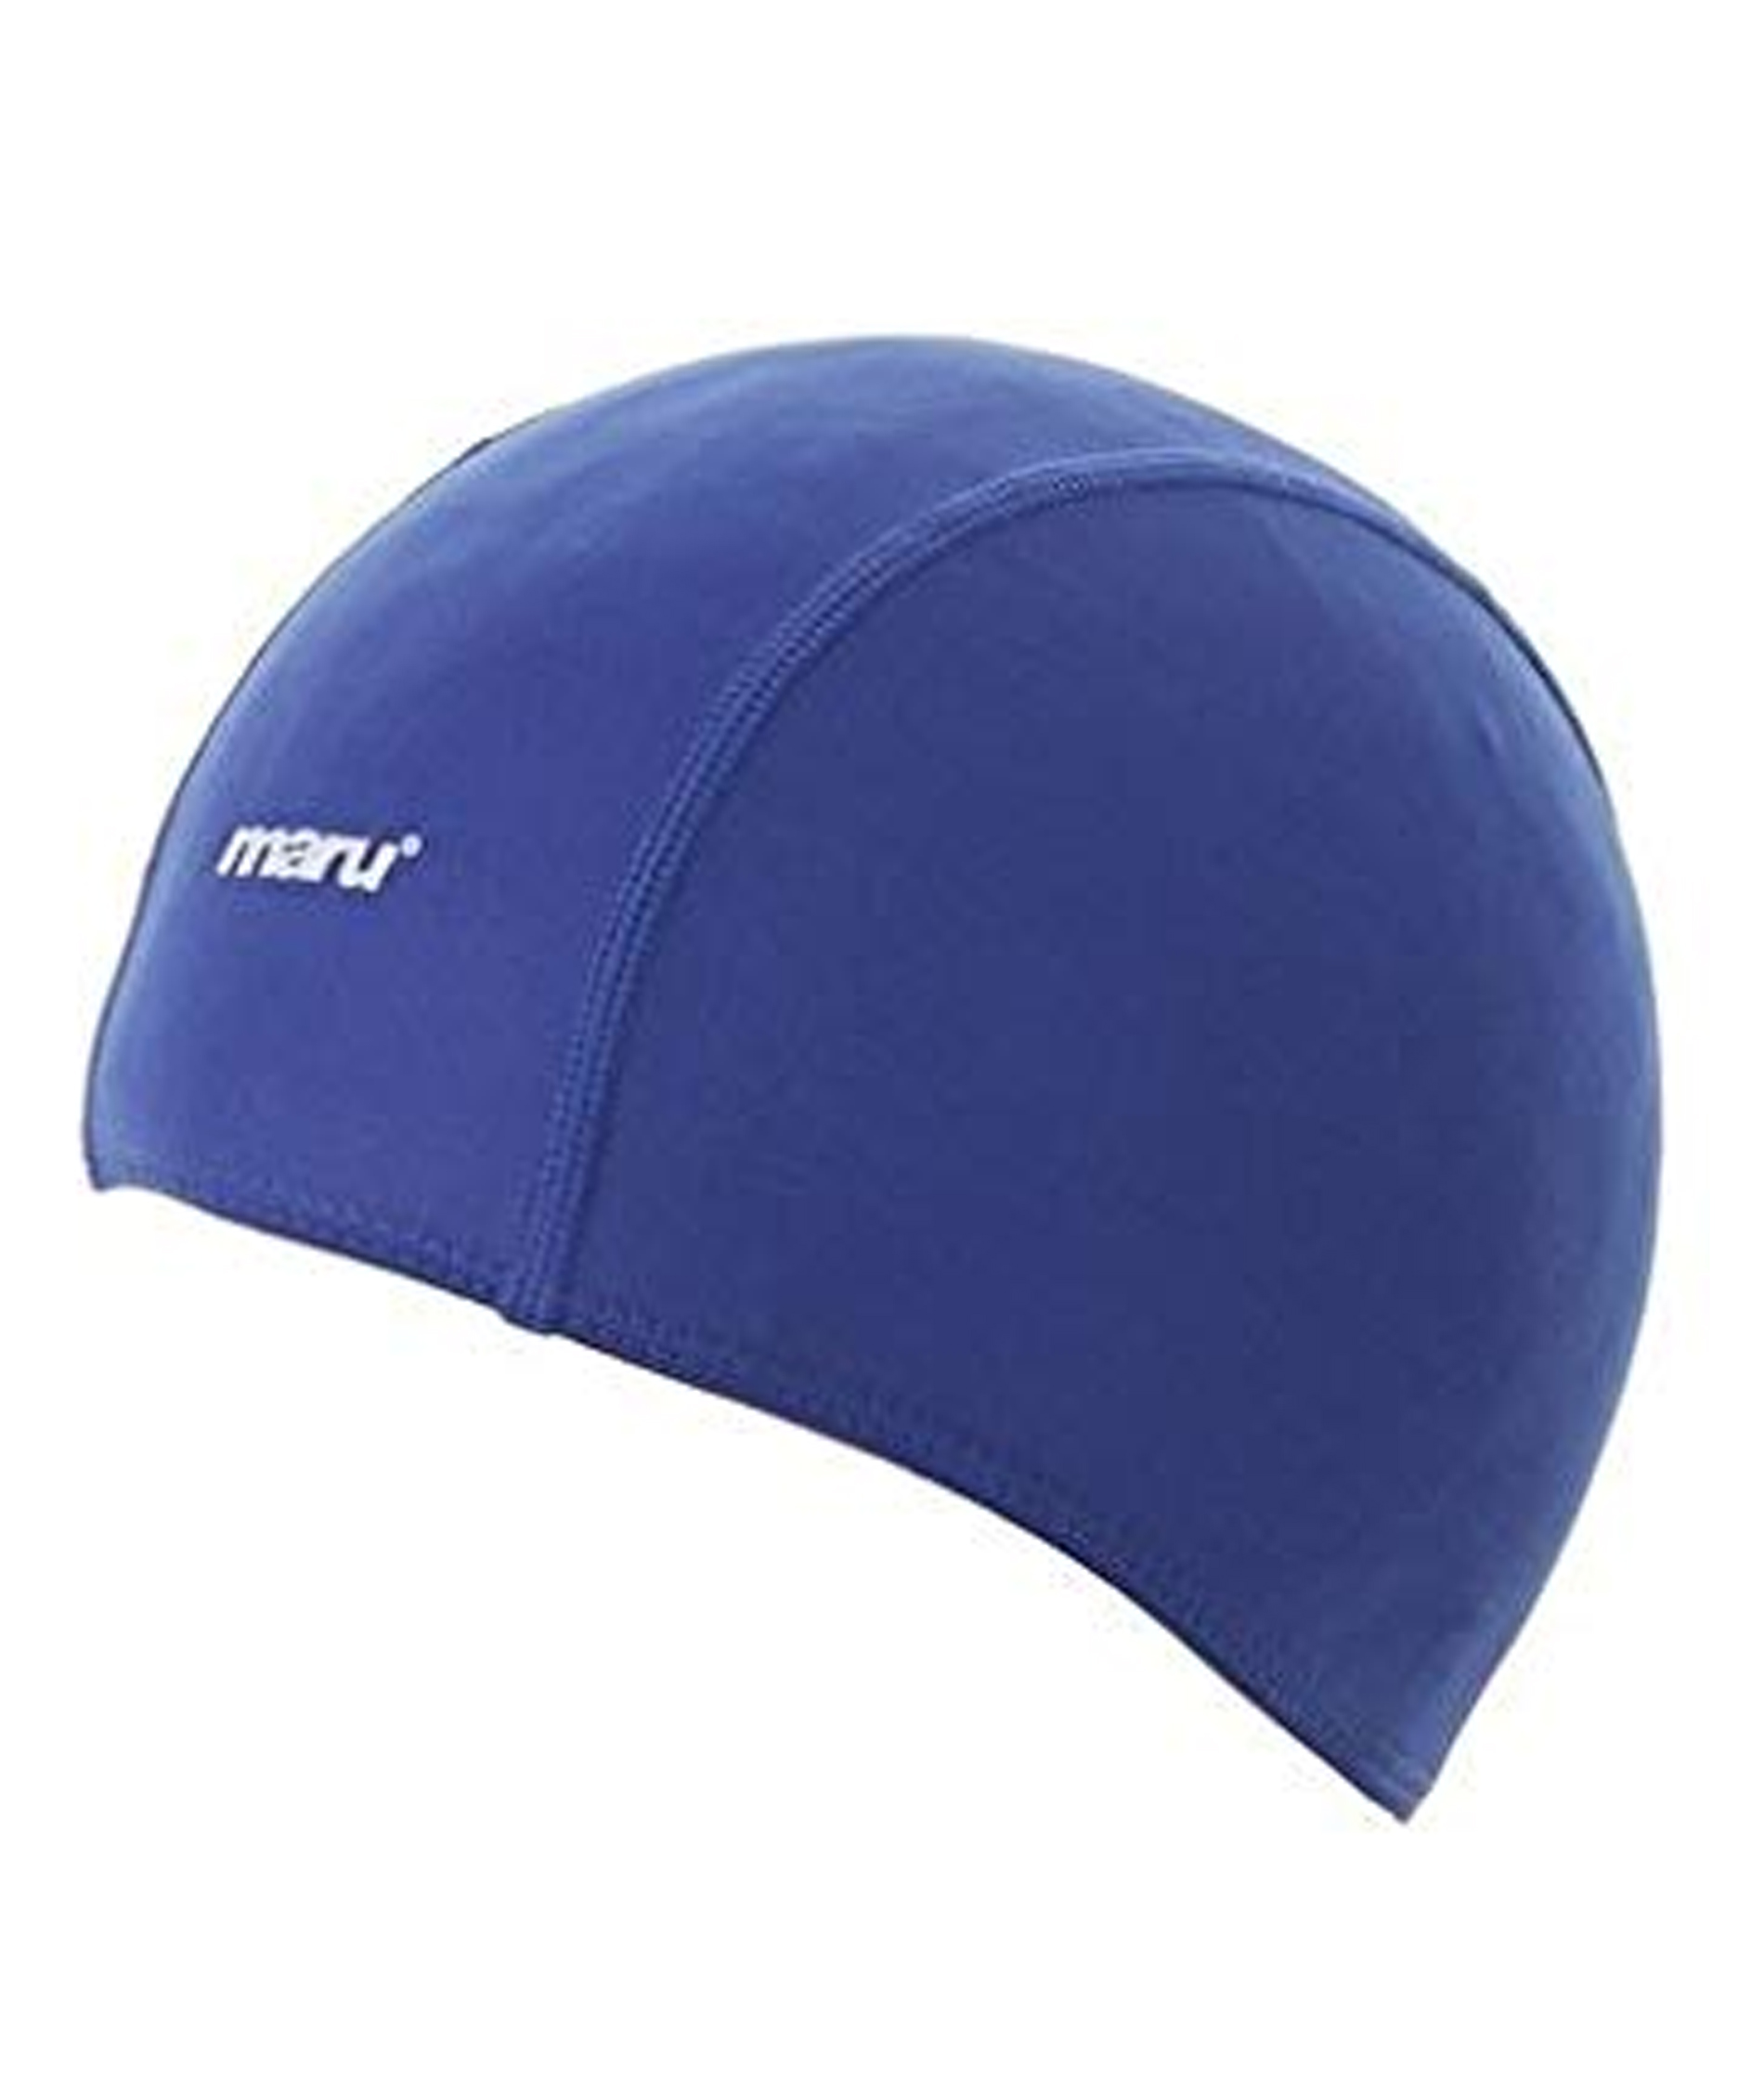 Maru Junior Polyester Cap - Blue